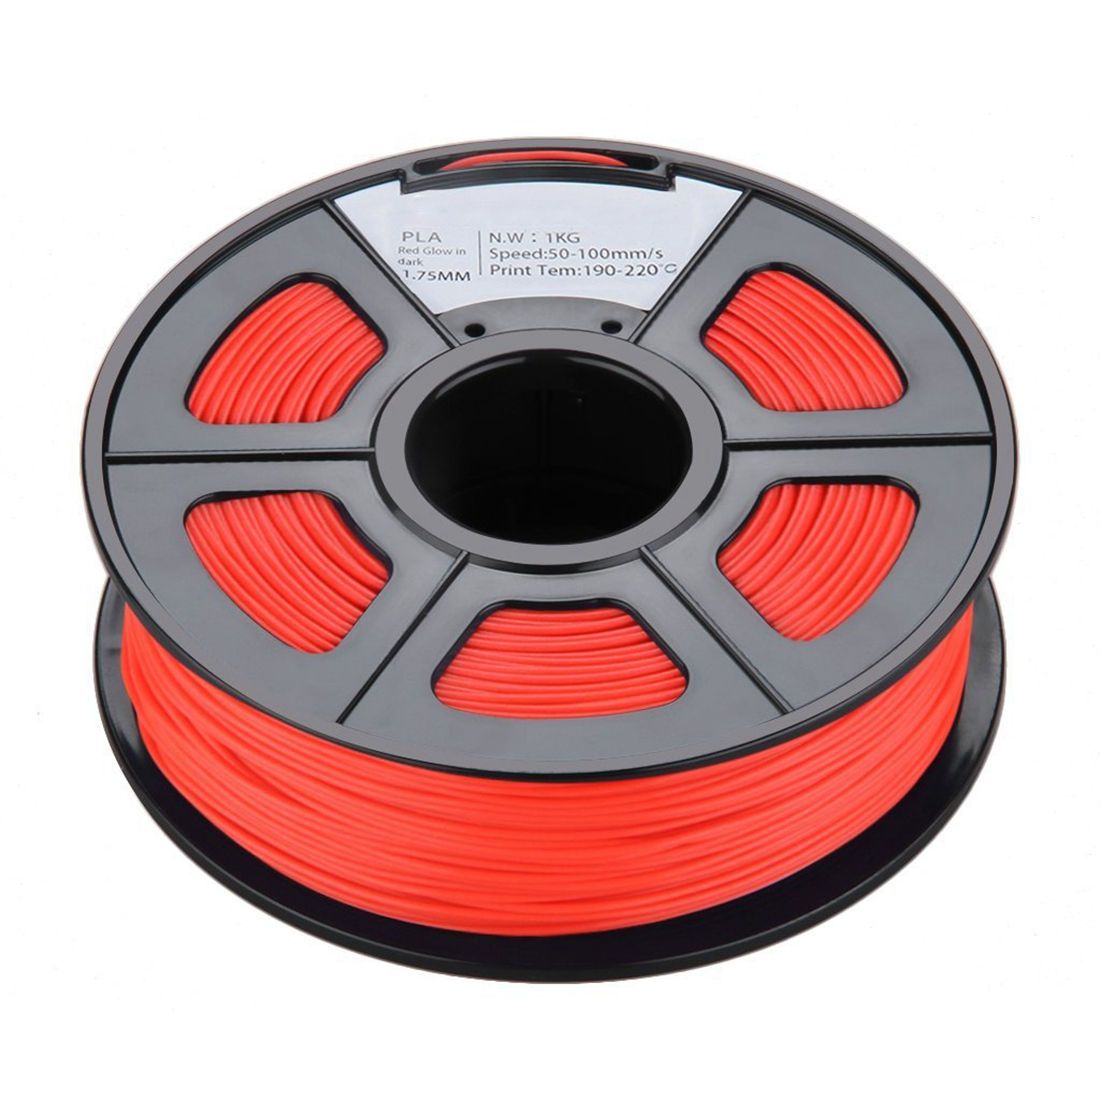 New 1.75mm Glow in the Dark PLA 3D Printer Filament - 1kg Spool (2.2 lbs) - Dimensional Accuracy +/- 0.02mm (Red) biqu new spool filament mount rack bracket for pla abs filament 3d printer